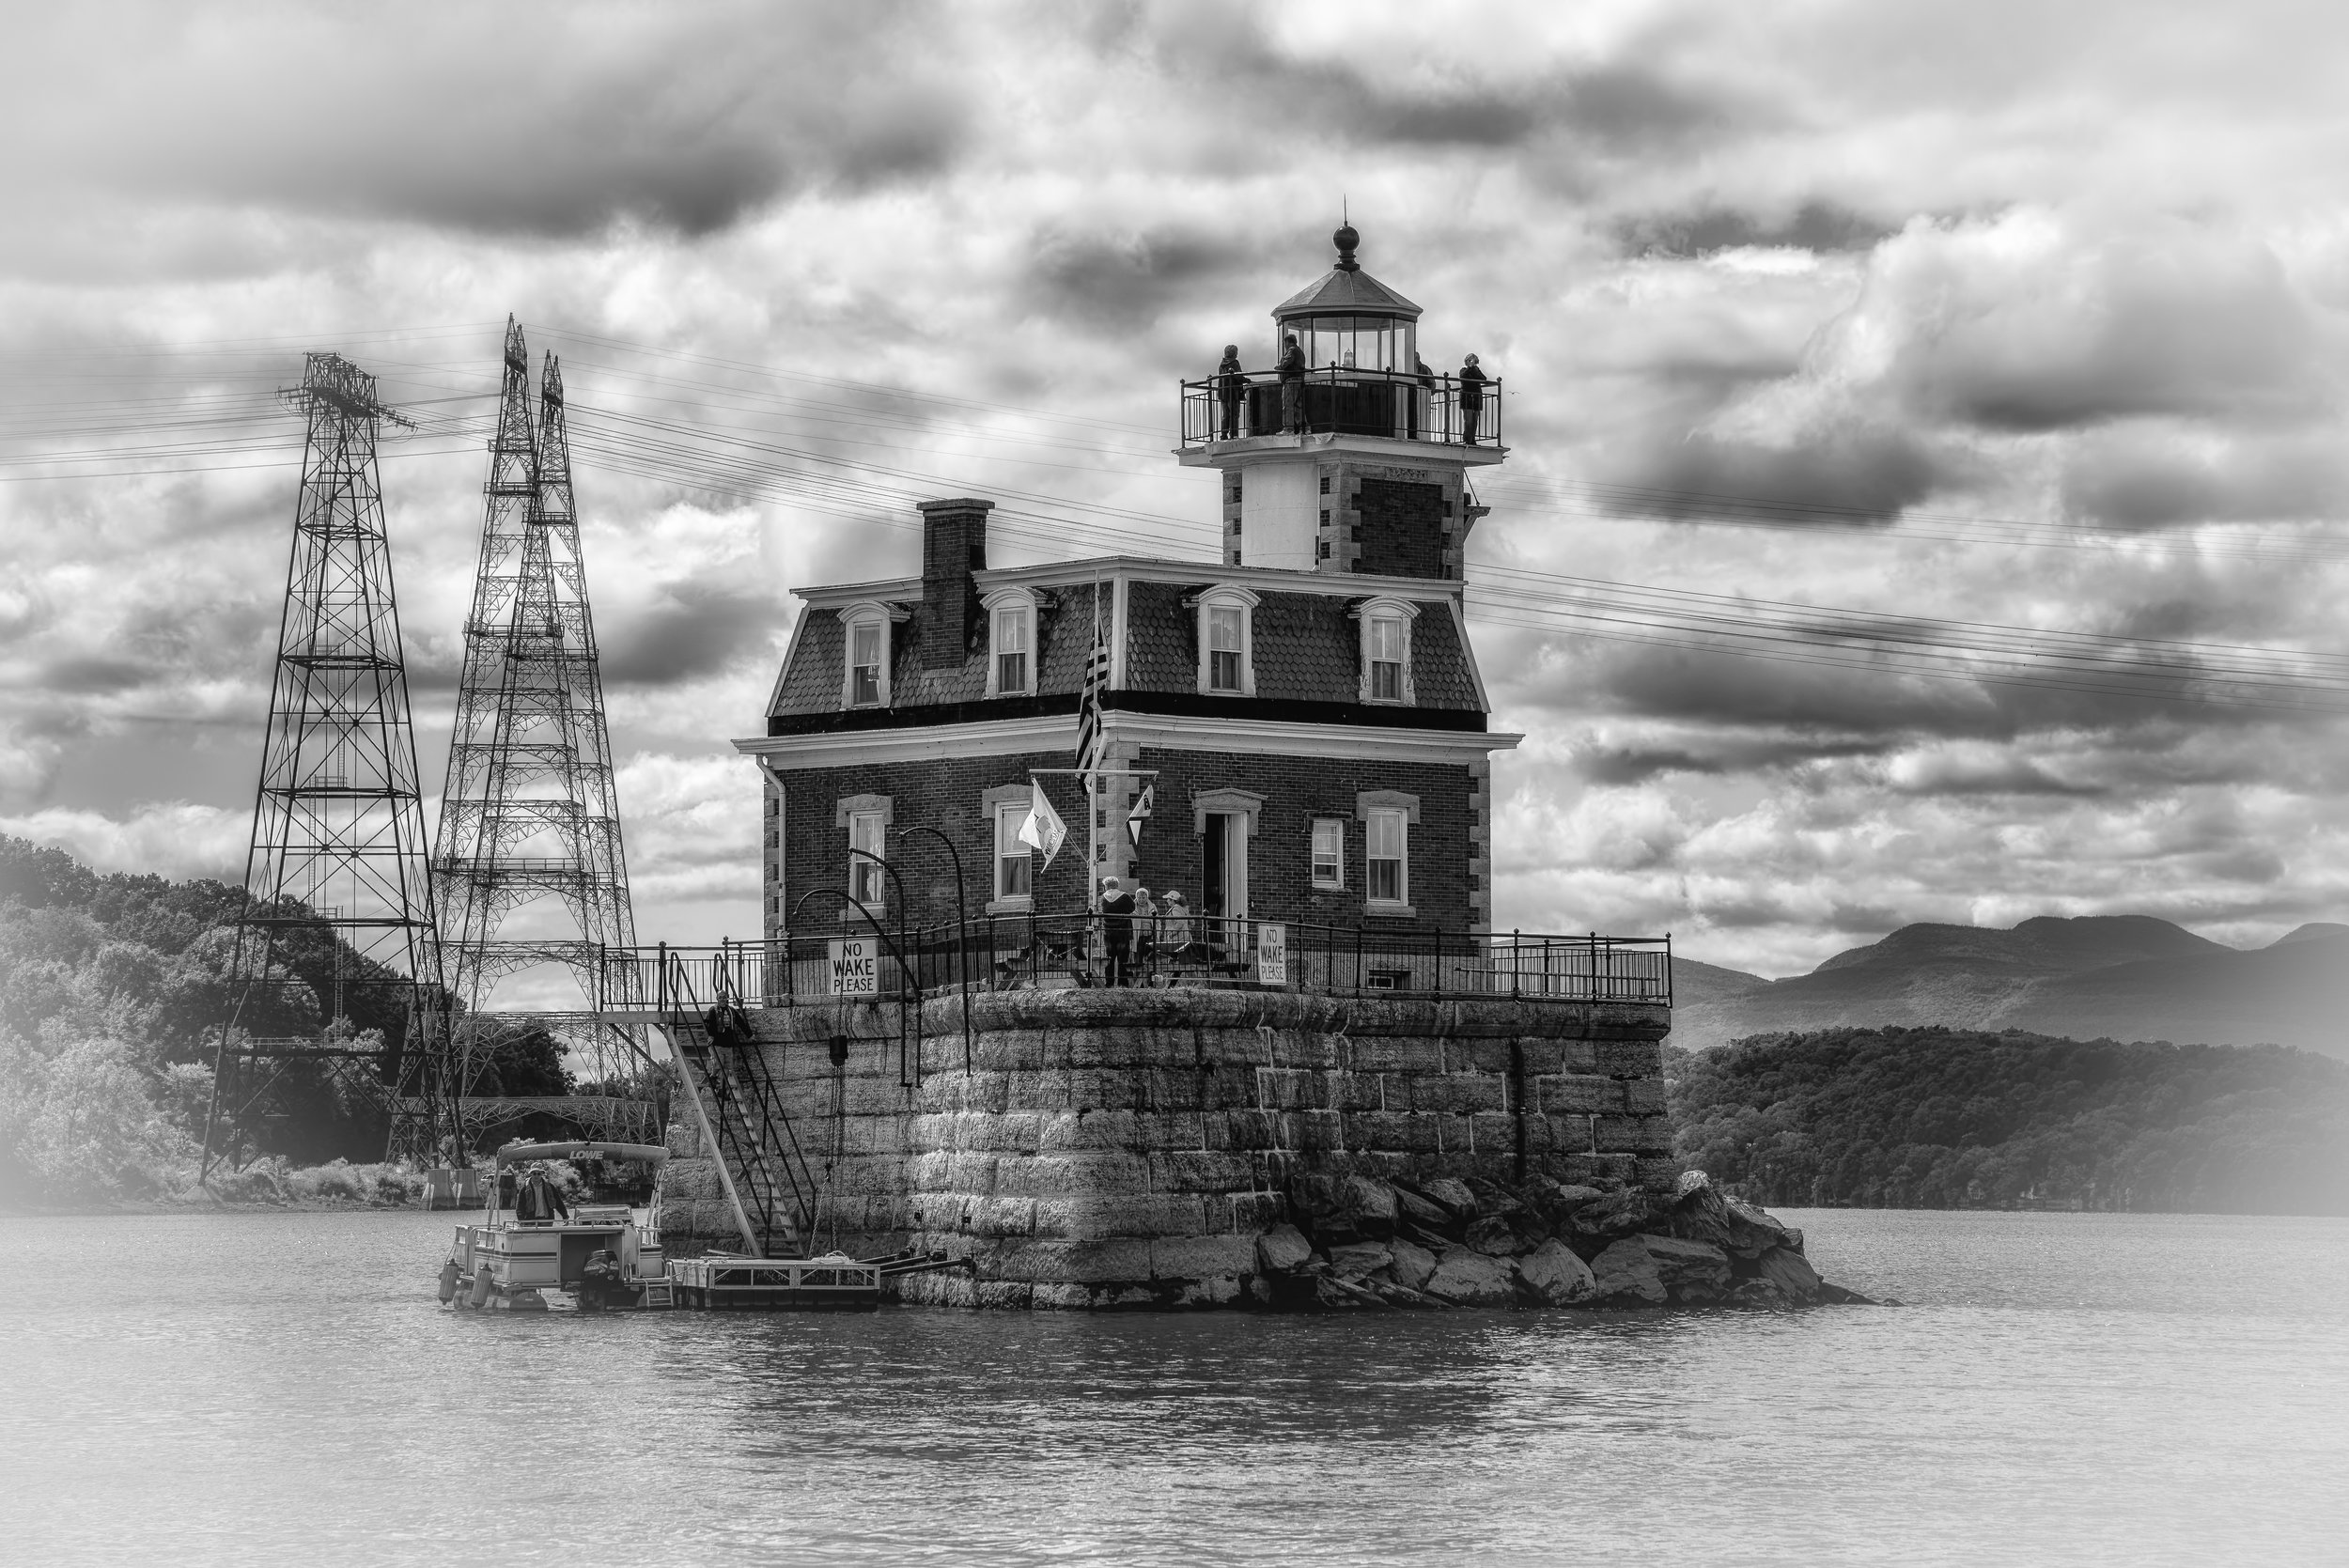 Lighthouse on the Hudson - Nikon D750, 1/800 @ f/10, ISO 200, 120mm - Converted to black and white in Silver Efex Pro. This is the Hudson-Athens Lighthouse on the Hudson River about 30 miles south of Albany.